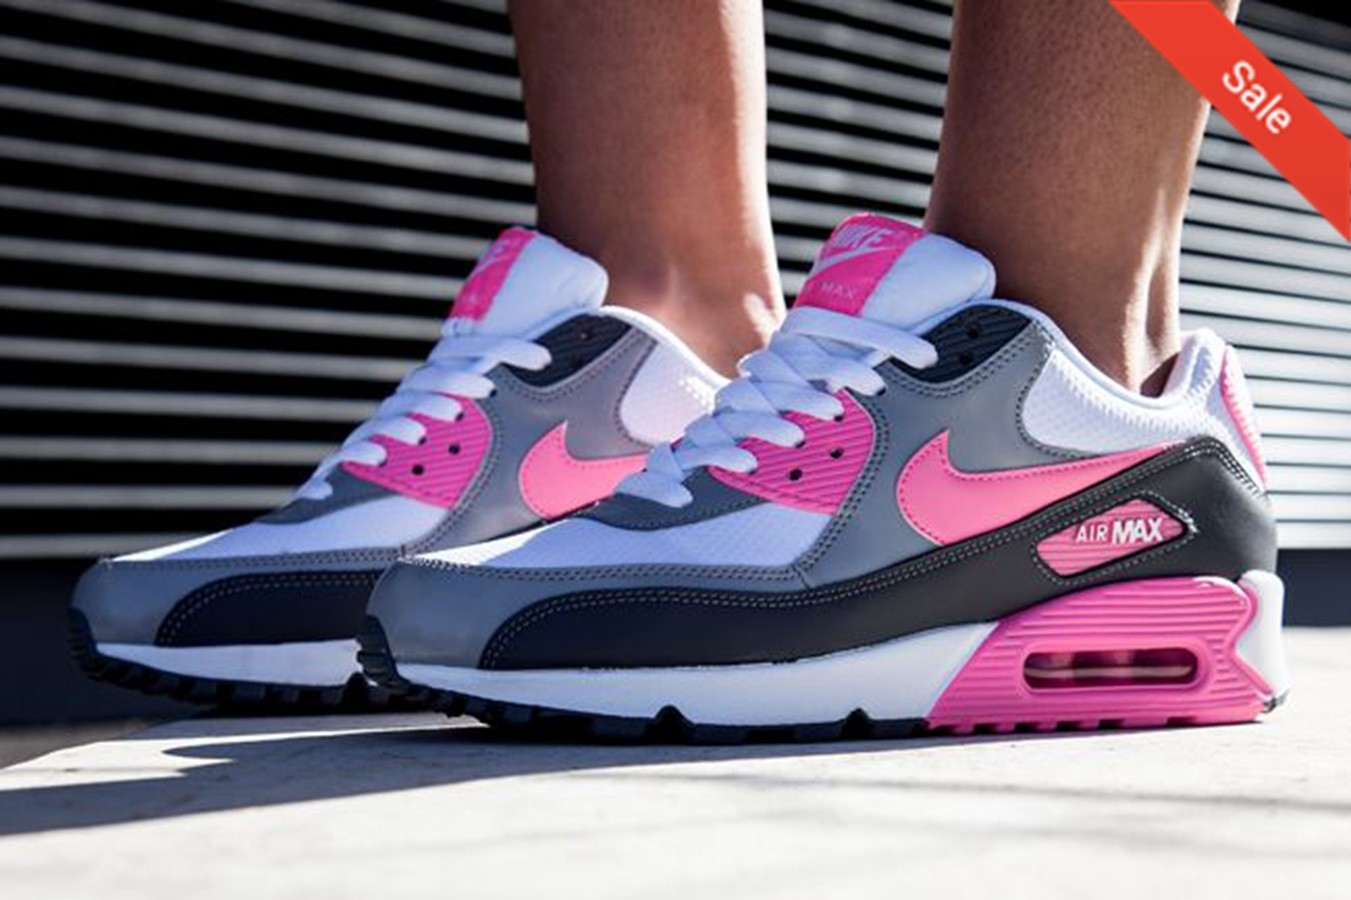 2019 air max femme foot locker 2019 12580